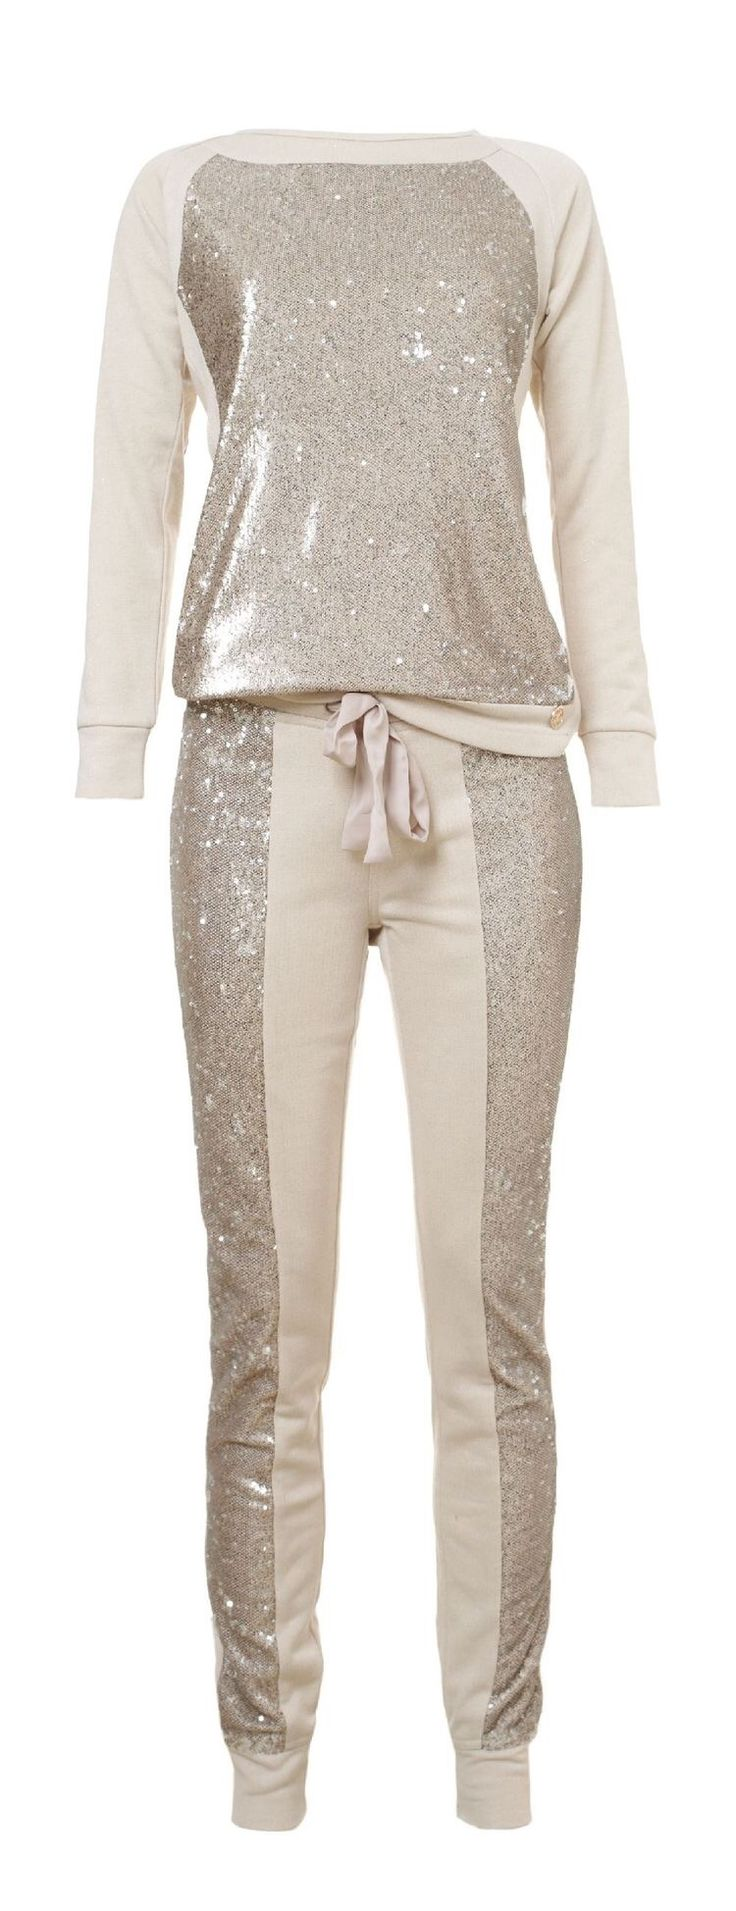 Sequin jumpsuit                                                       …